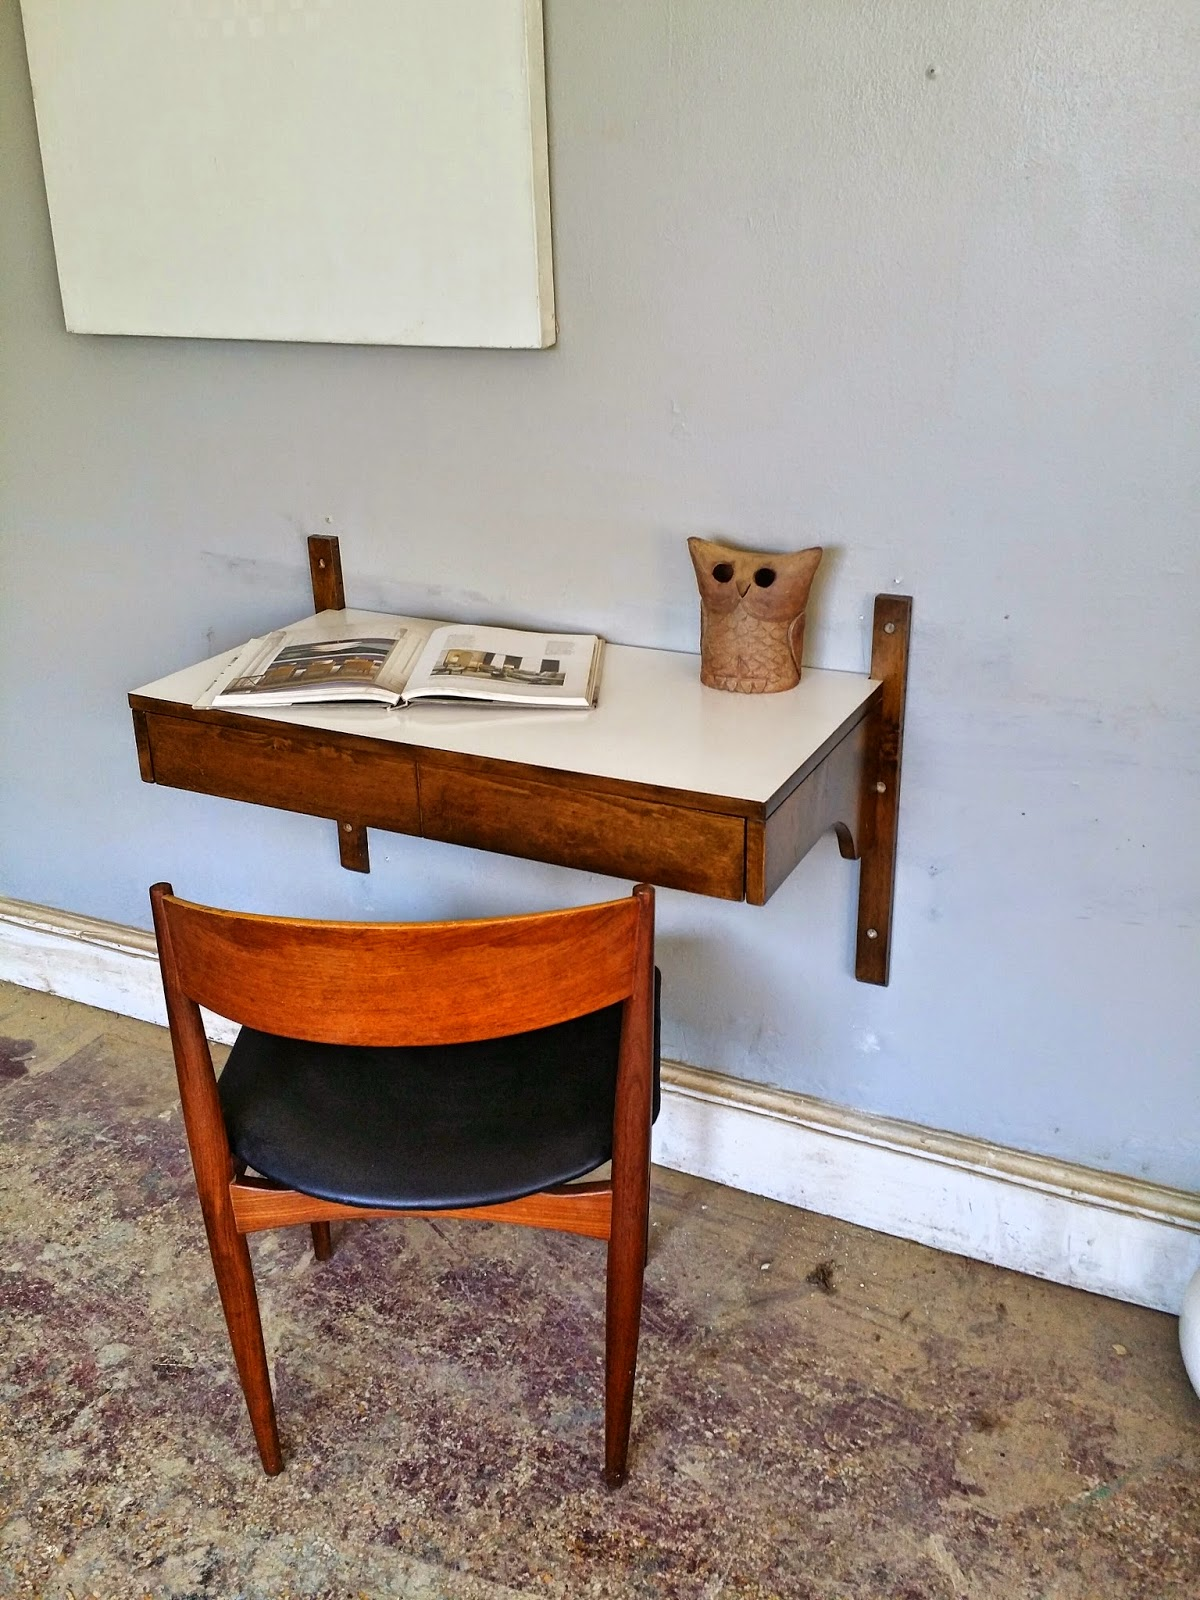 This Is An Awesome Mid Century Floating Unit. It Can Be Used As A Desk,  Nightstand, Entry Table, Etc. It Is Very Versatile And A Fantastic Piece.